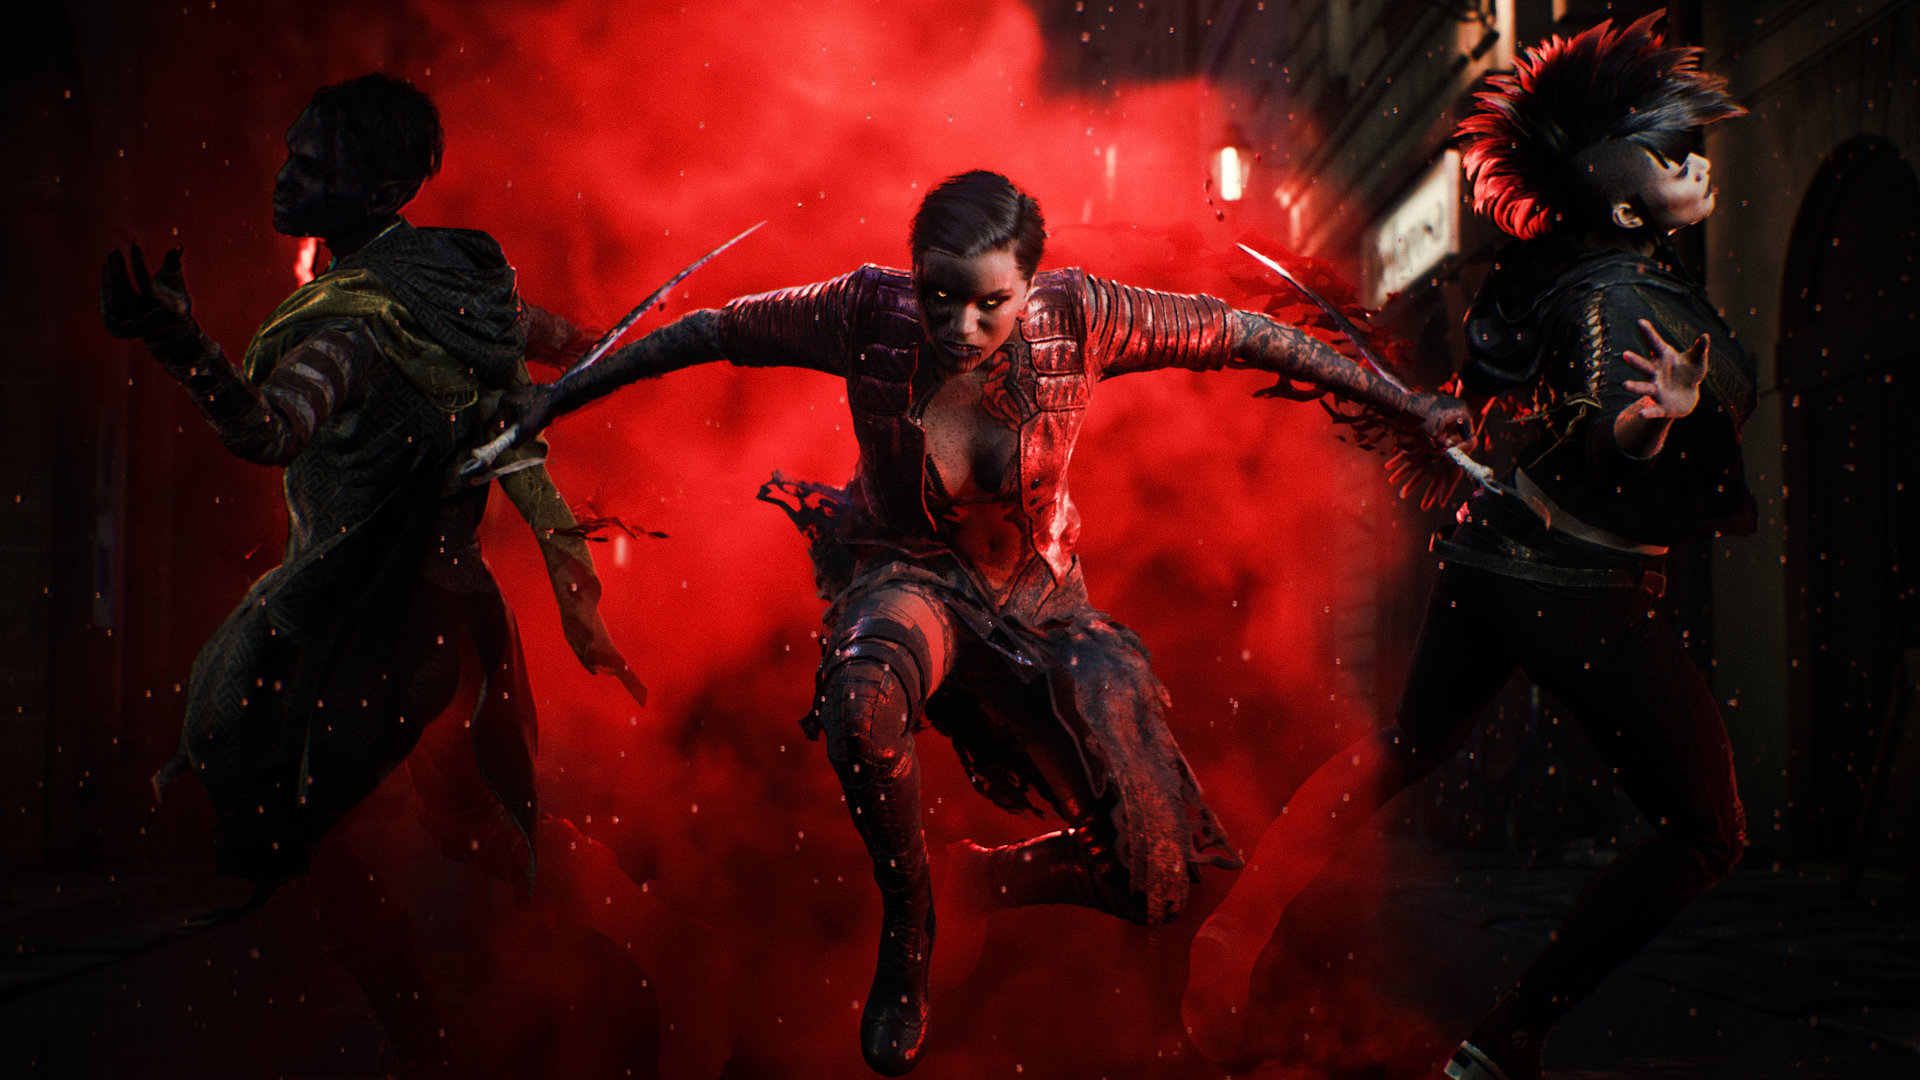 Vampire: The Masquerade is spawning a battle royale | Rock Paper Shotgun